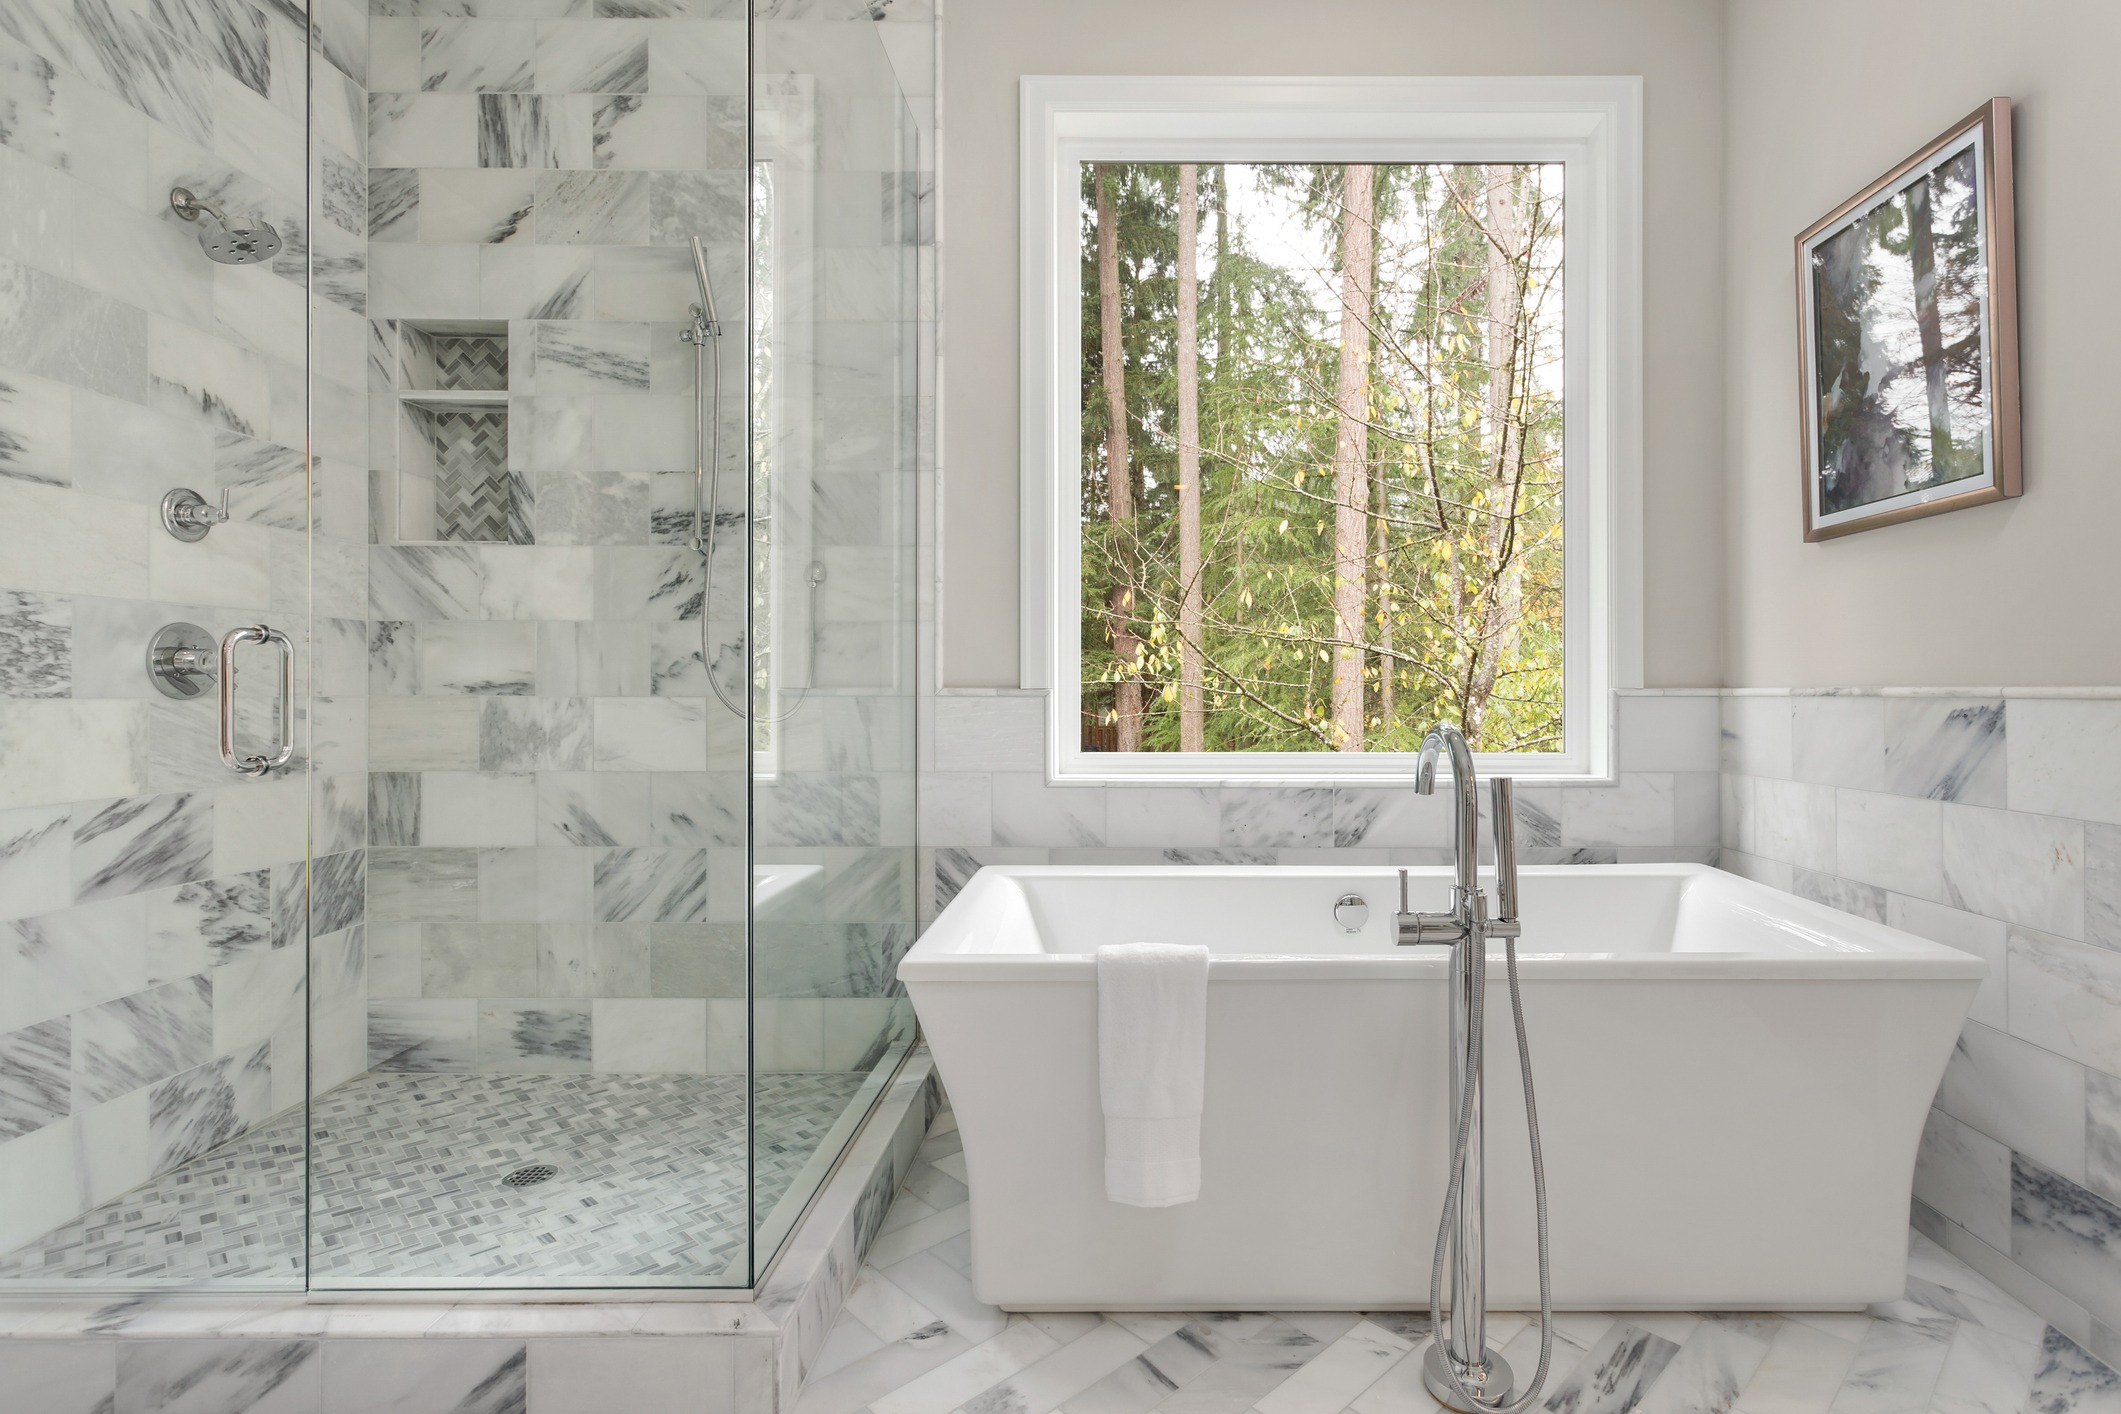 Choosing The Perfect Shower Or Tub For Your Bathroom Remodel